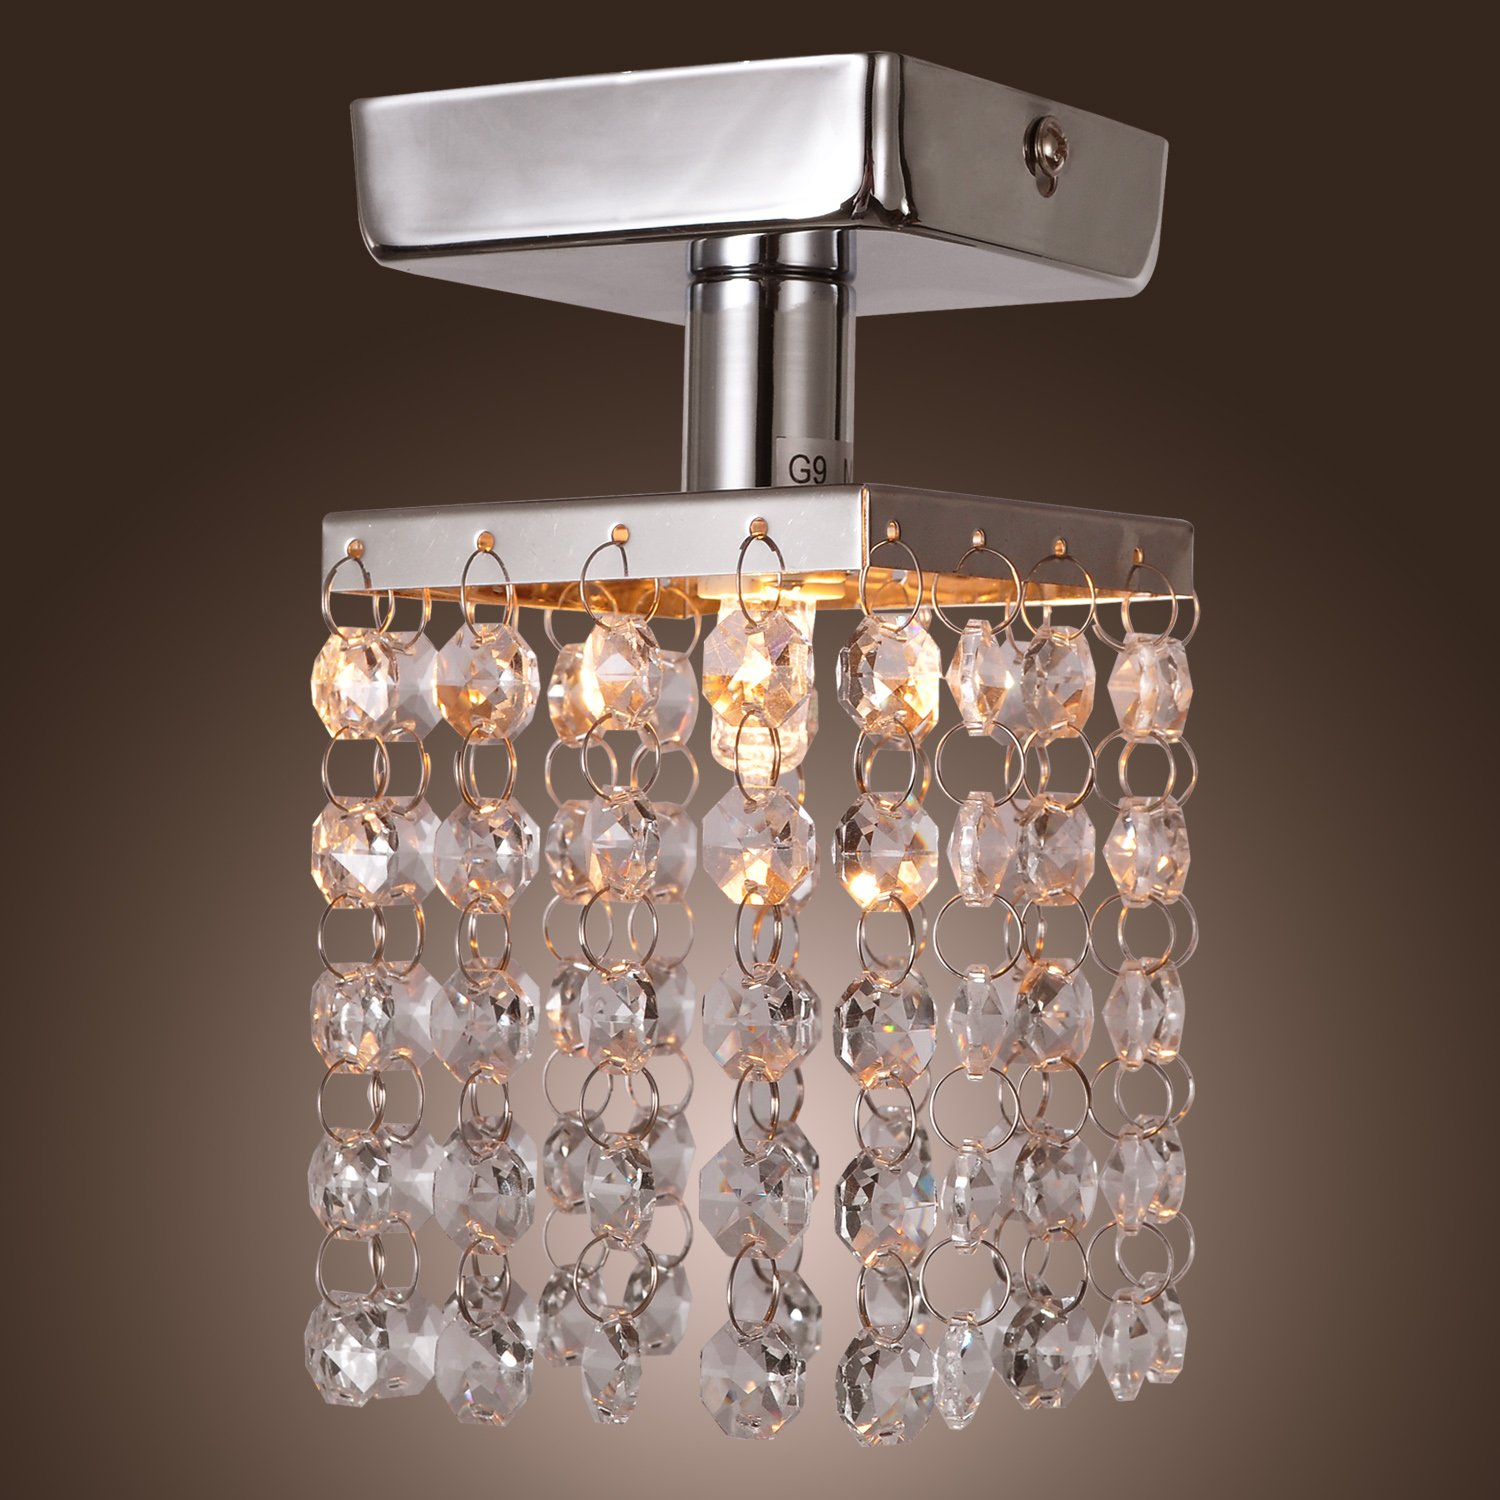 a61bc86f0f5 LightInTheBox Mini Semi Flush Mount in Crystal (Chrome Finish ...